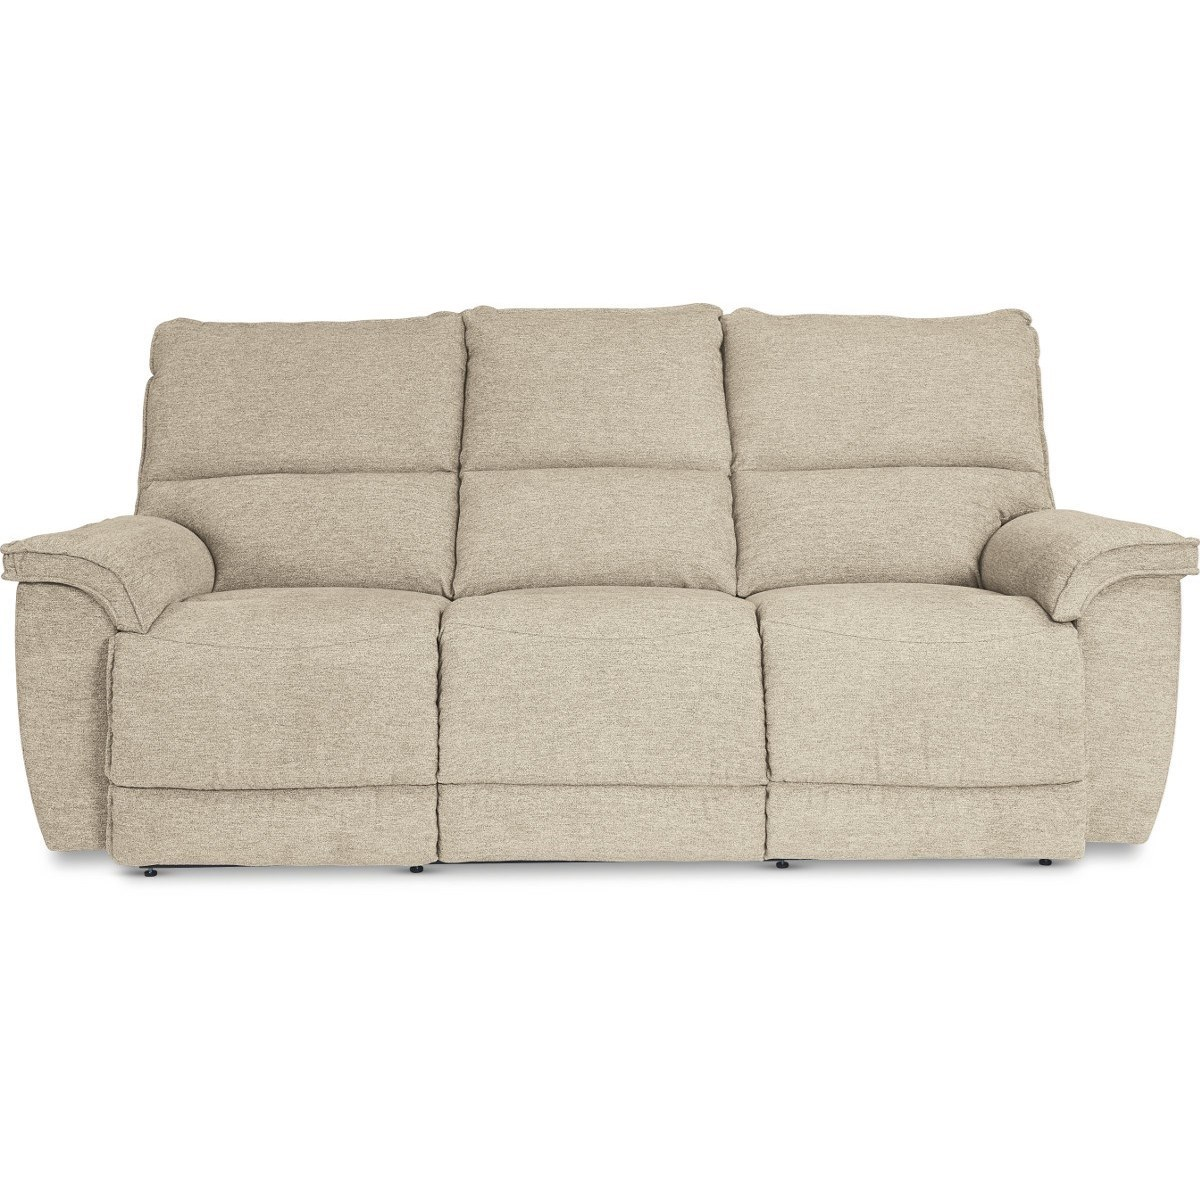 Norris Reclining Sofa by La-Z-Boy at Sparks HomeStore